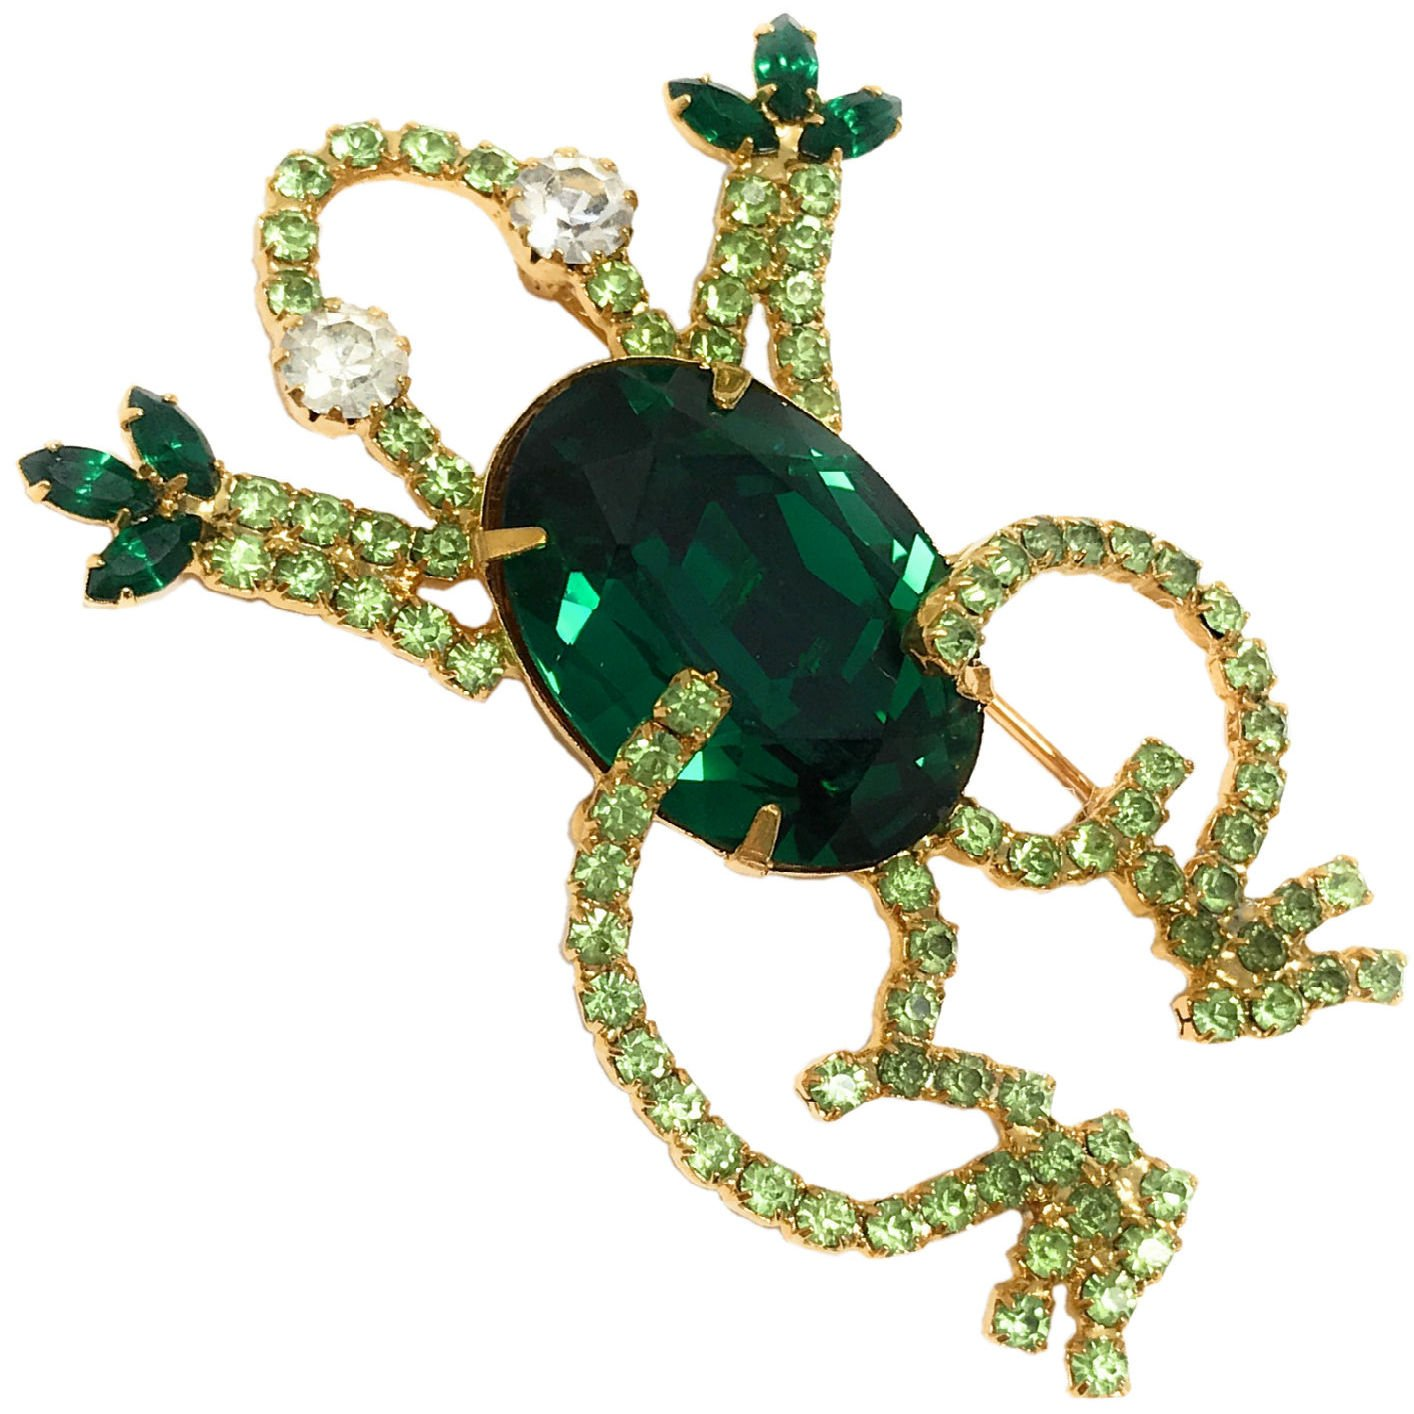 Dave's Collections Bejeweled Glitzy Austrian Crystal Gold-Plate Green Frog Brooch, 1.75'' x 2.5''